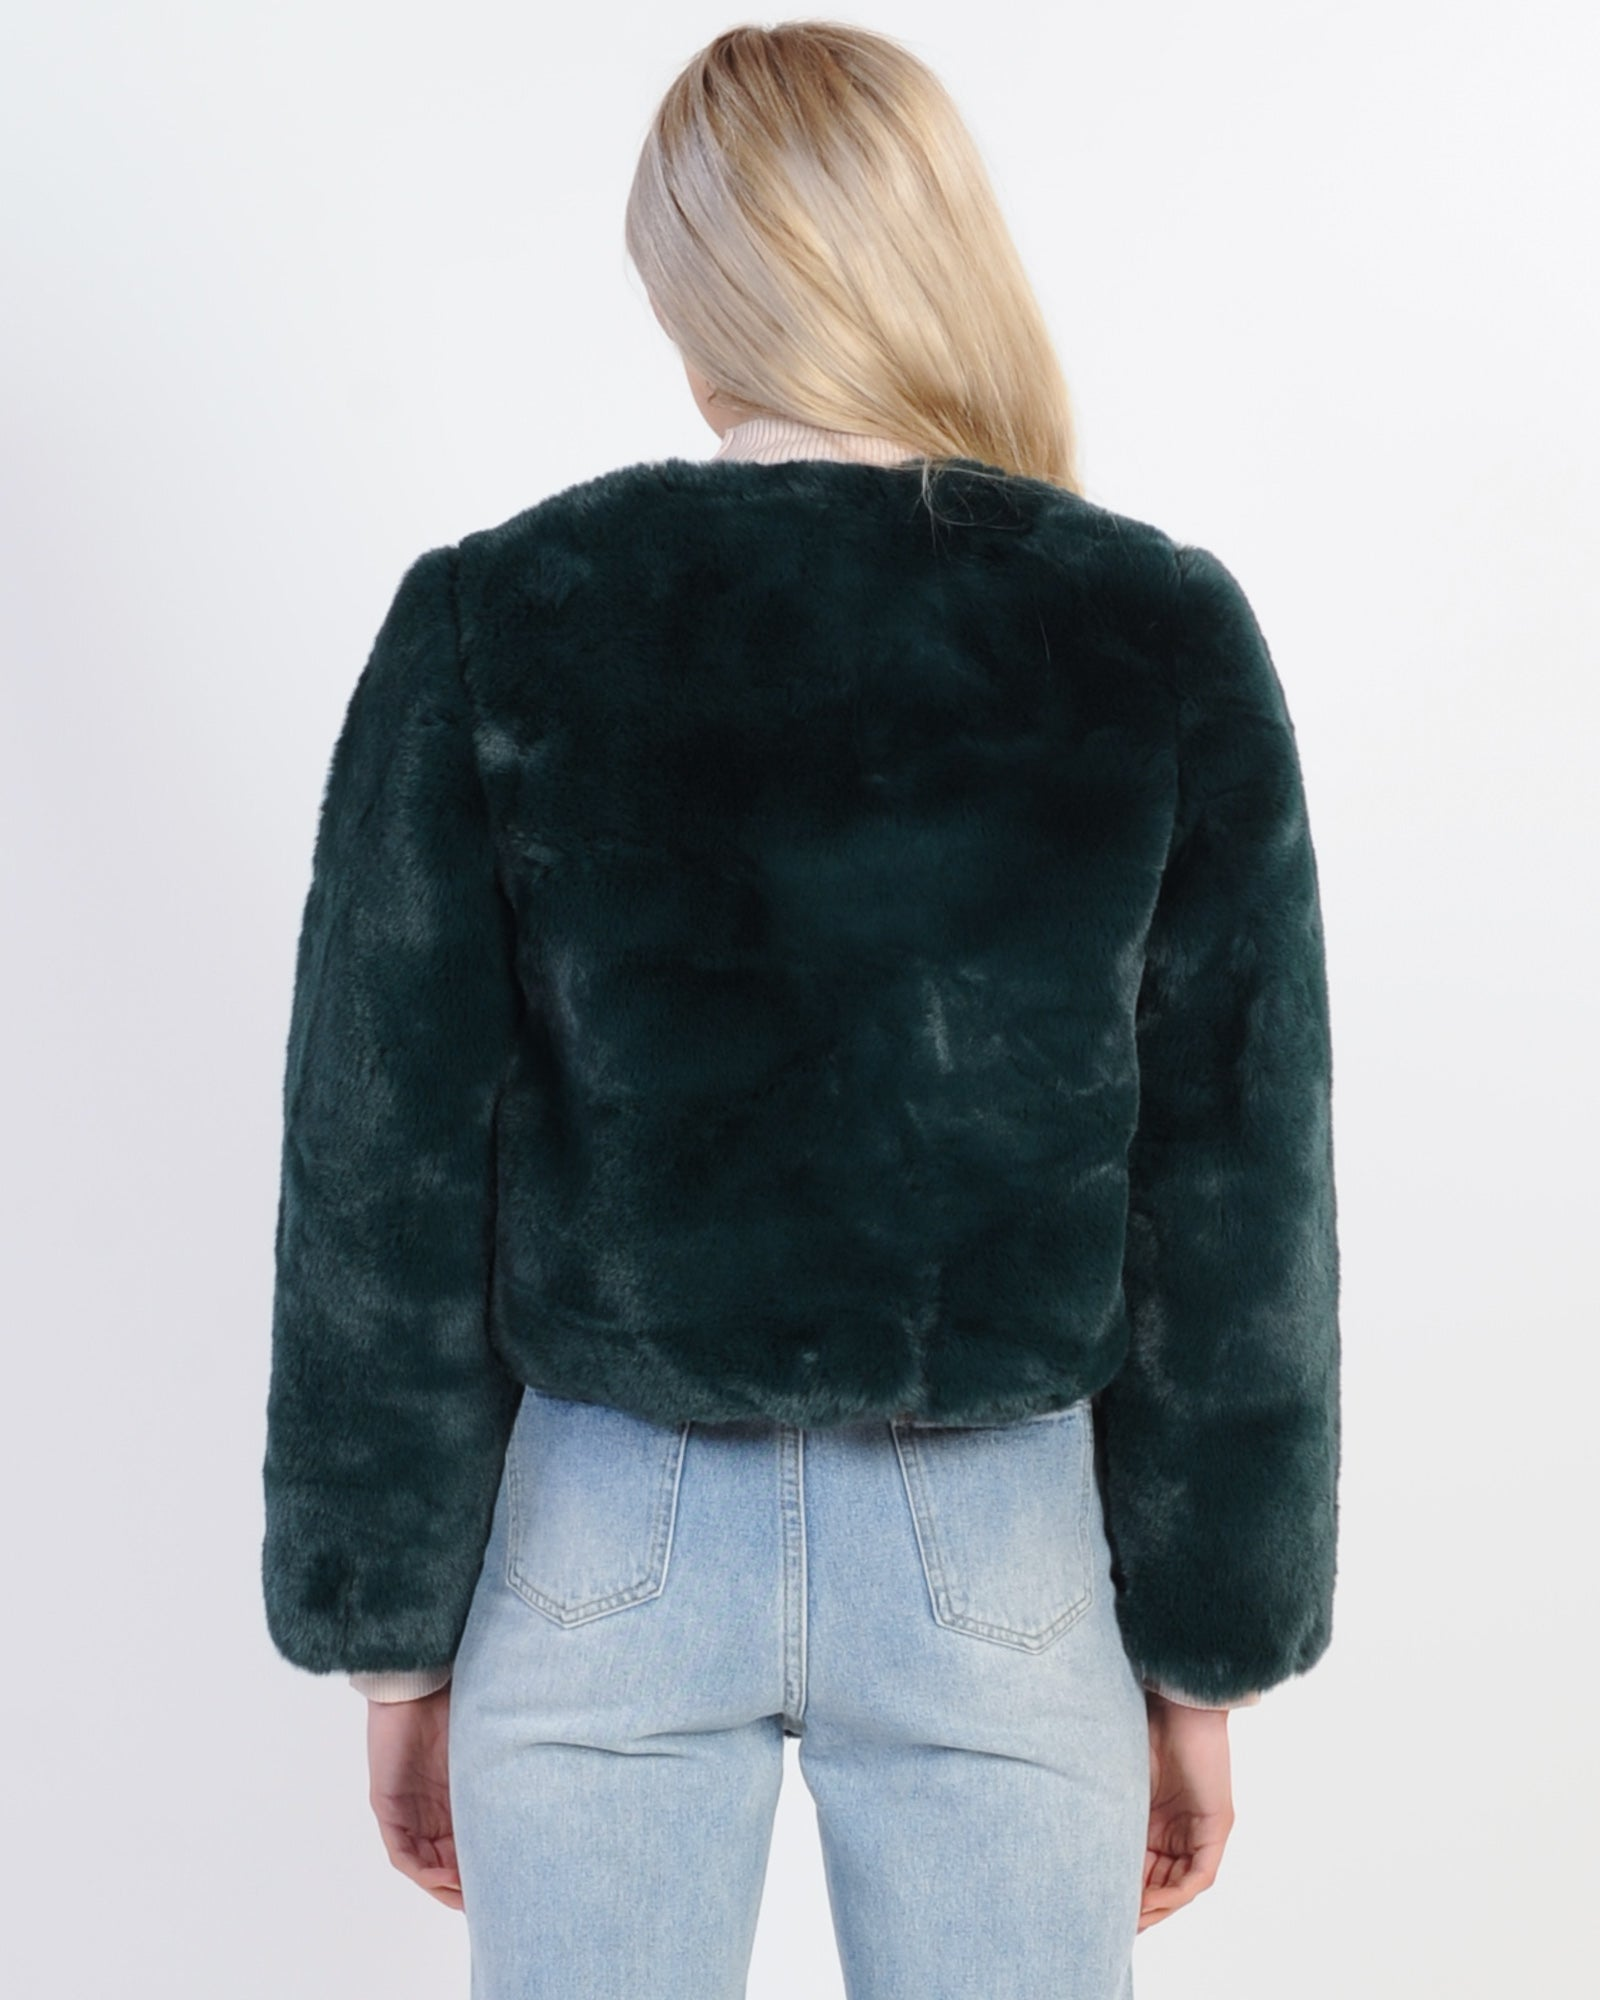 On The Prowl Faux Fur Jacket - Green